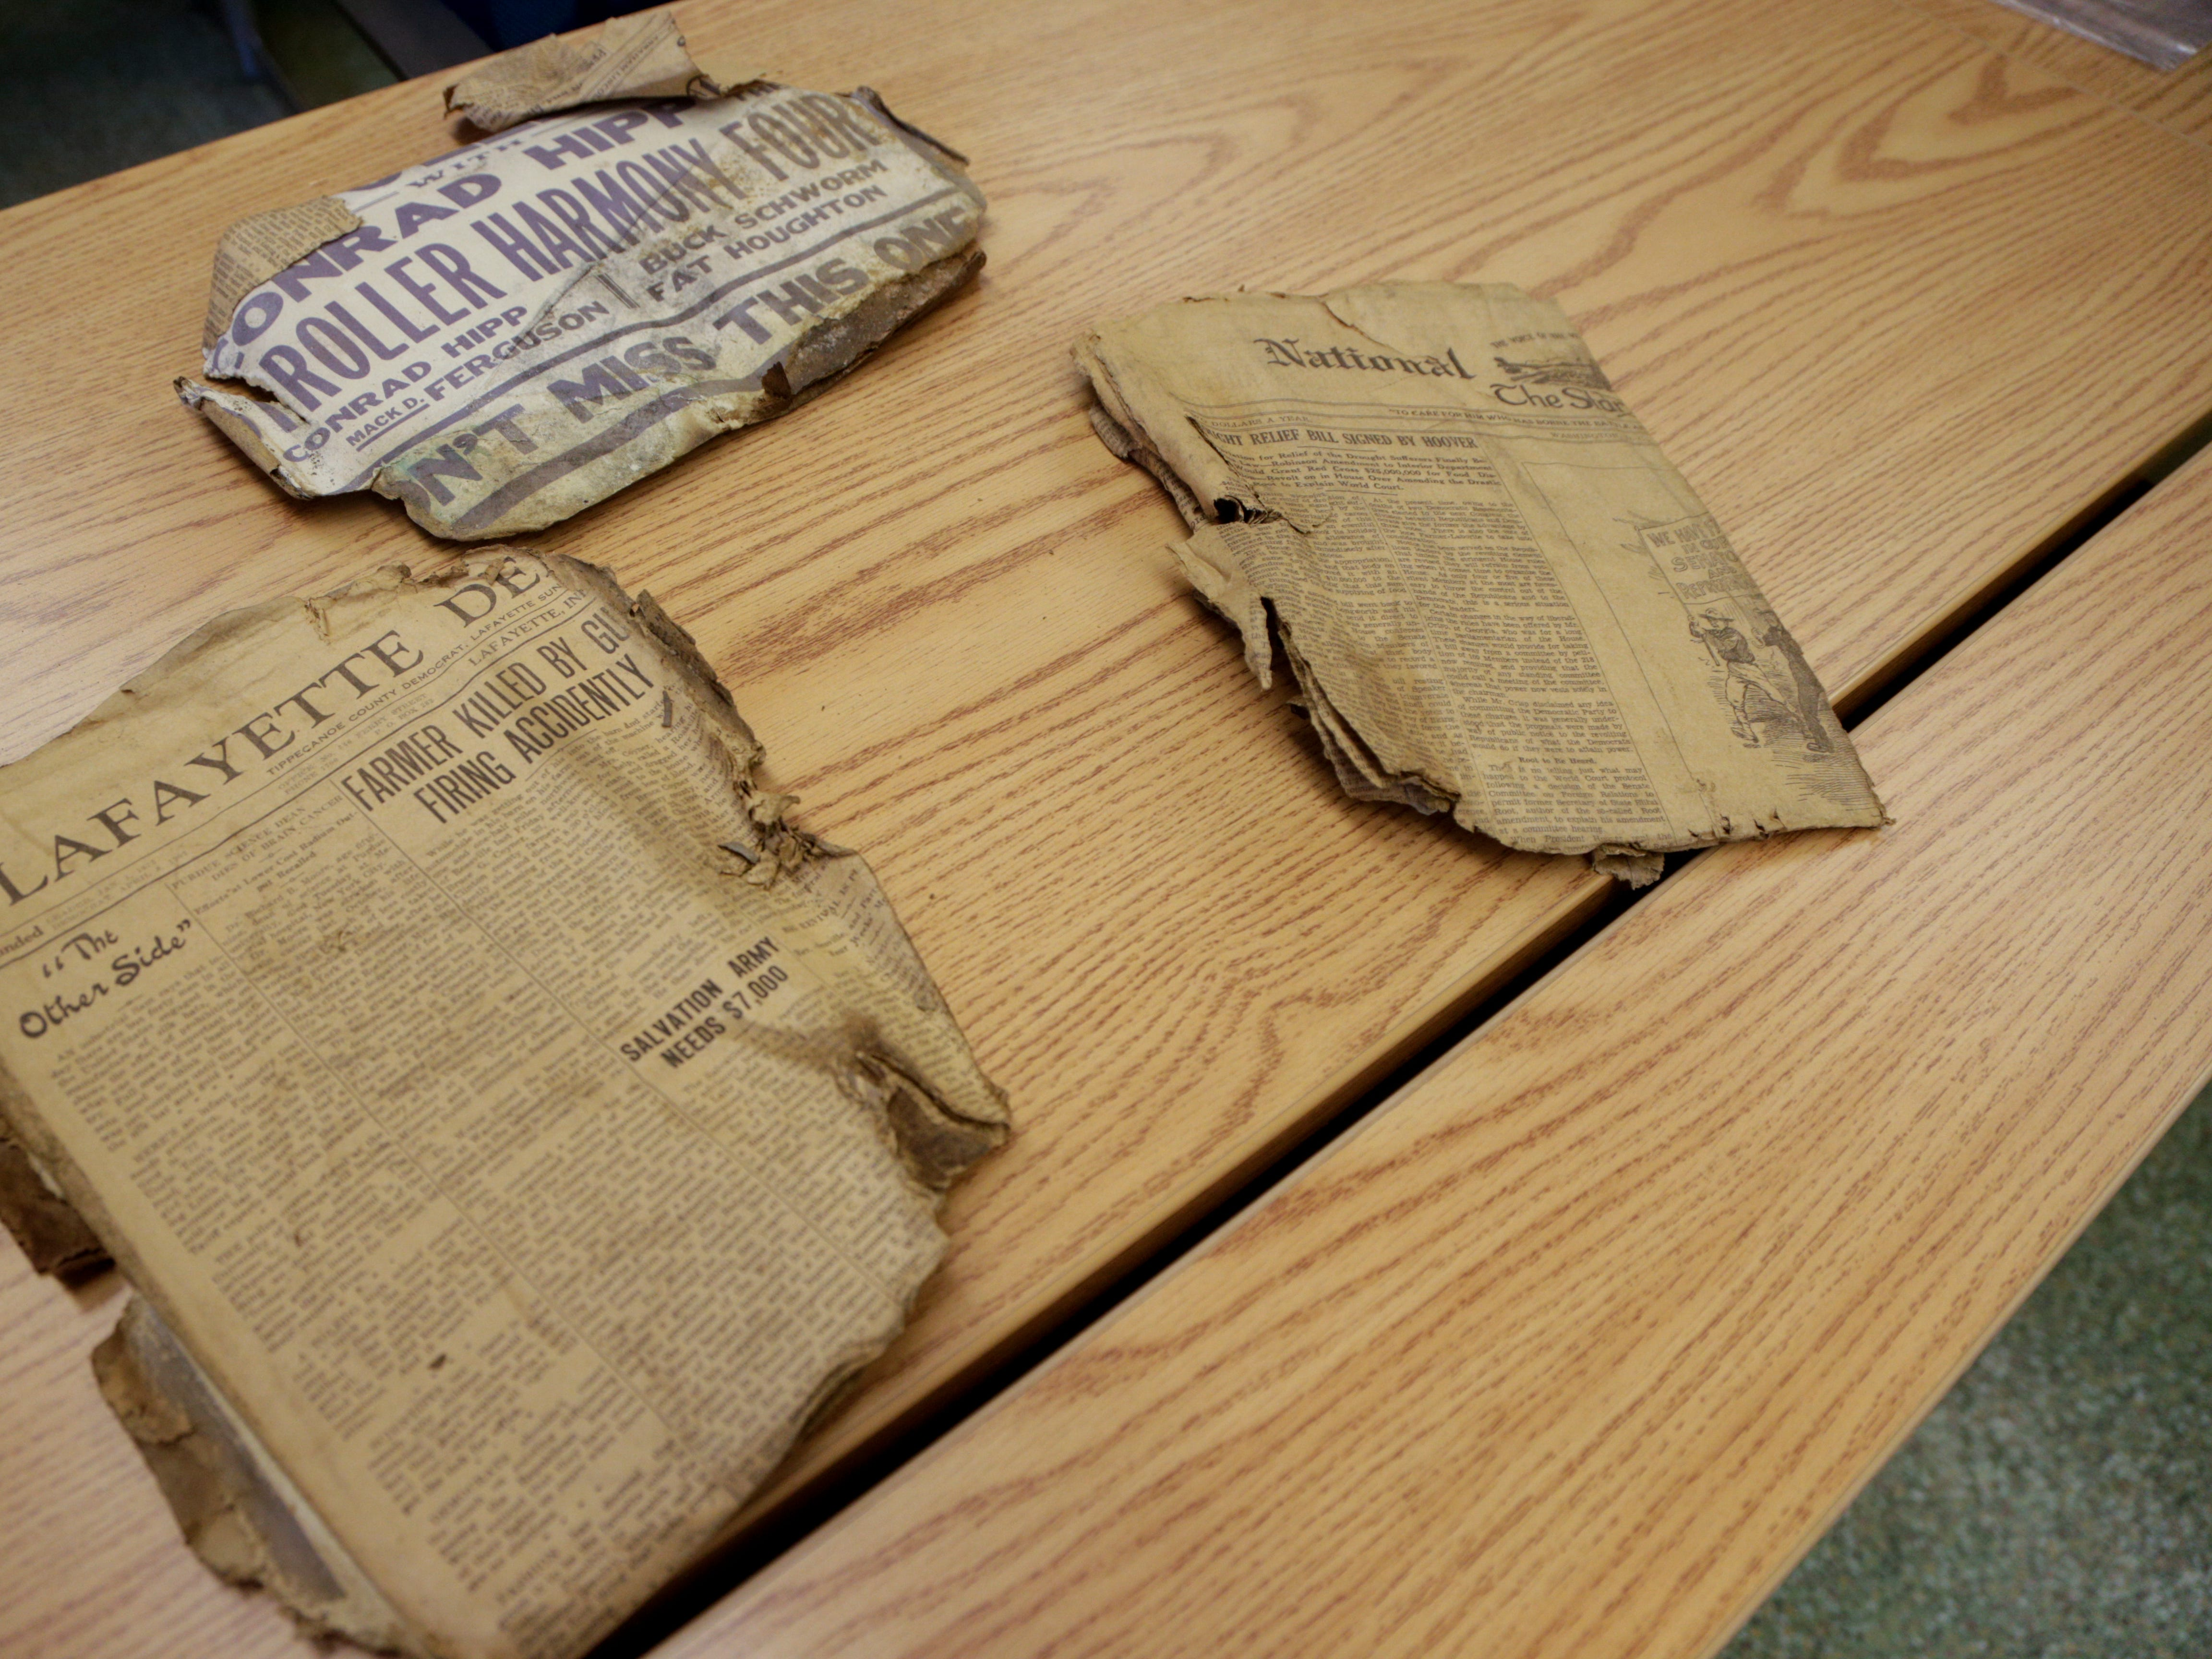 Newspaper clippings from January 26, 1931 sit on a table after being removed from a time capsule, Monday, April 1, 2019, at the Tippecanoe County Historic Association in Lafayette. The copper box, unearthed on March 28, 2019 under a boulder that commemorated the Spanish-American War in front of the Columbian Park Zoo, contained several newspaper clippings and a list of names.